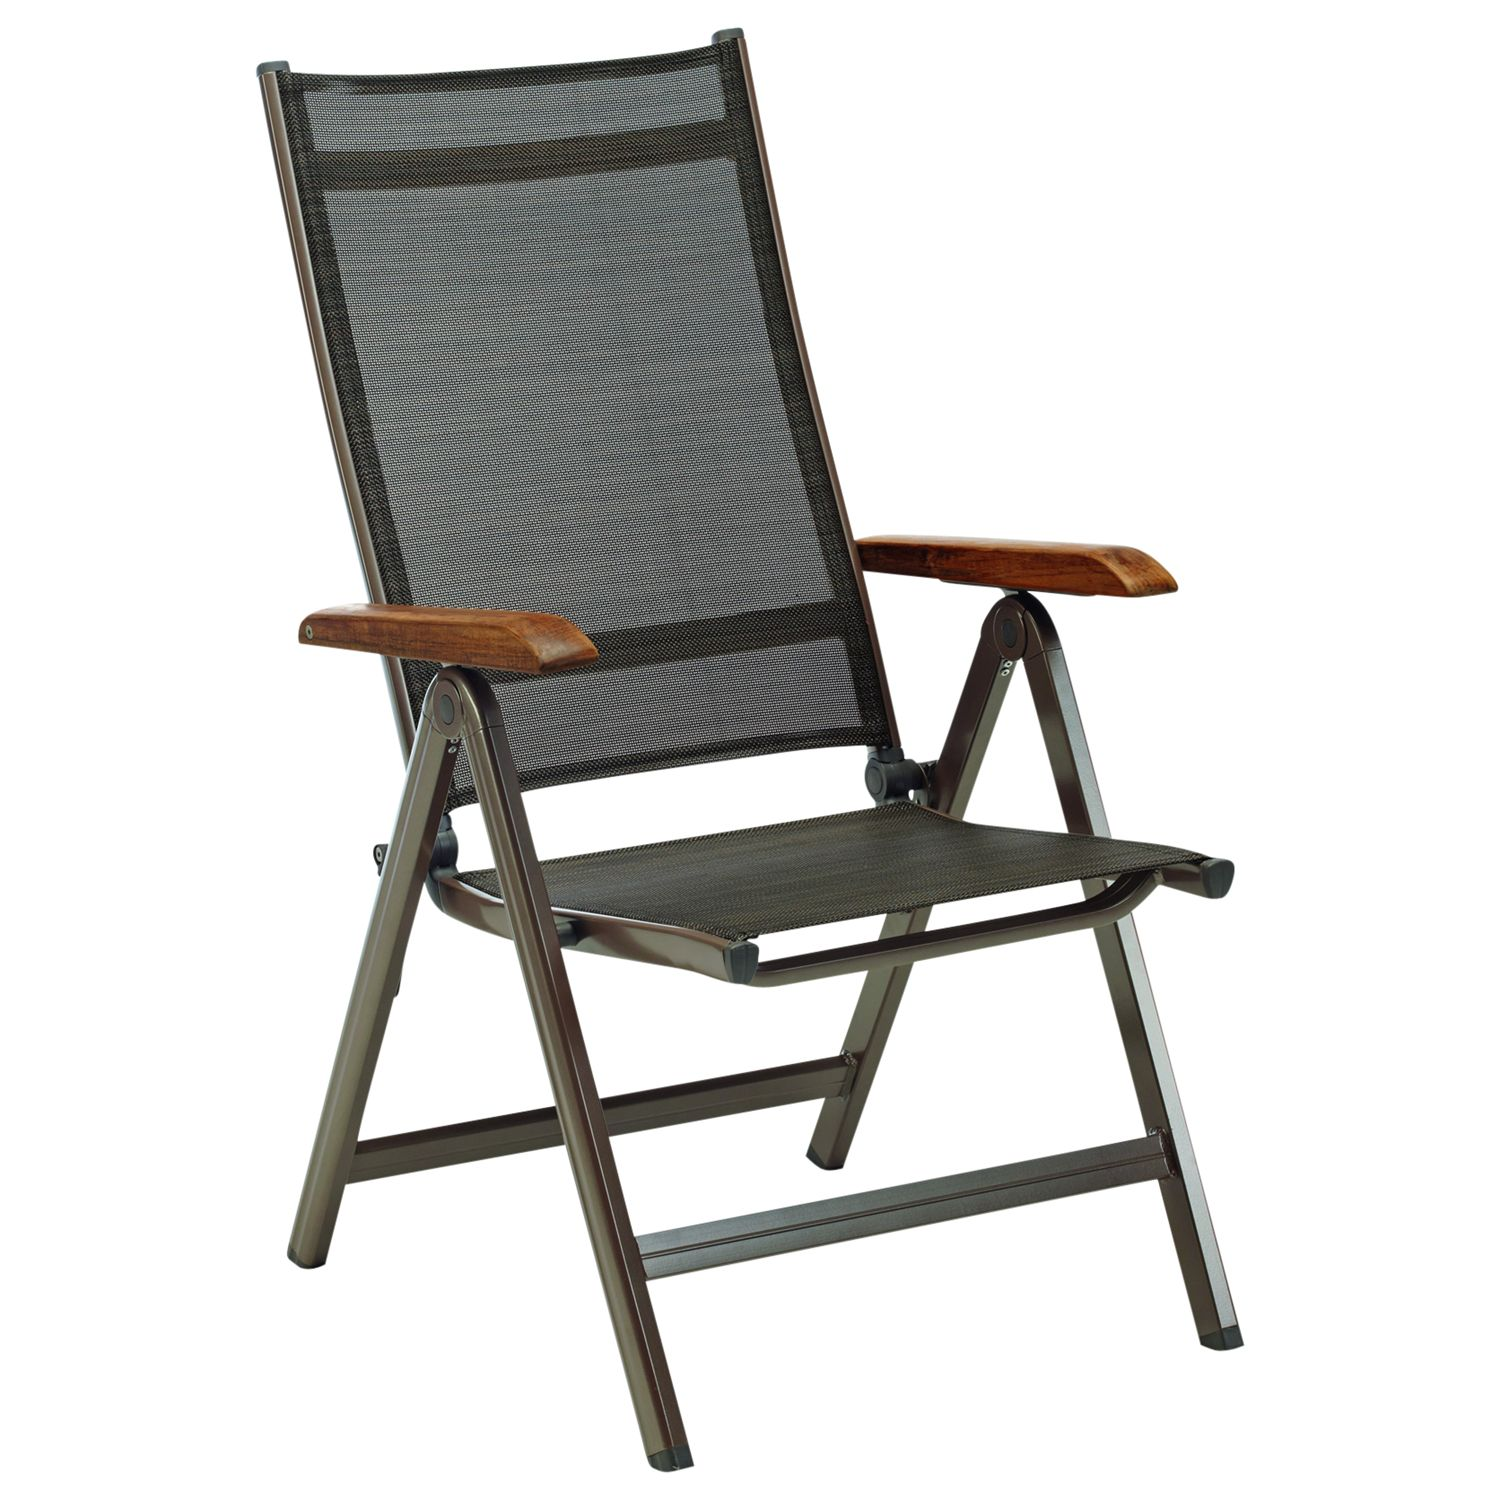 Kettler Grenada Multi-Position Outdoor Dining Chair, Brown